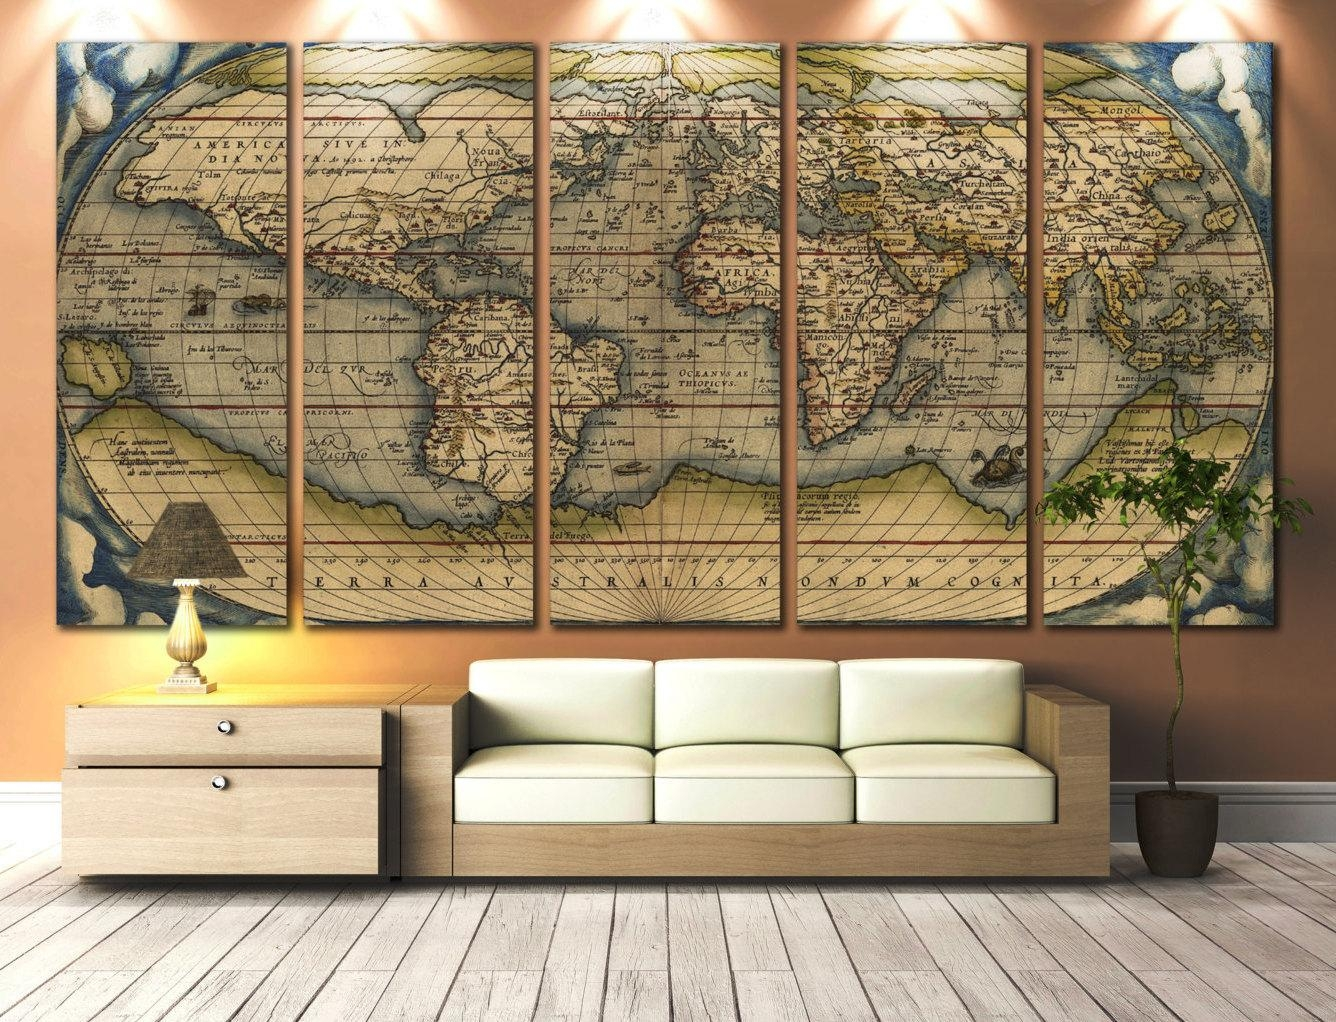 Big Artwork For Walls 20 43 Choices Of Large Vintage Wall Art Wall Art Ideas